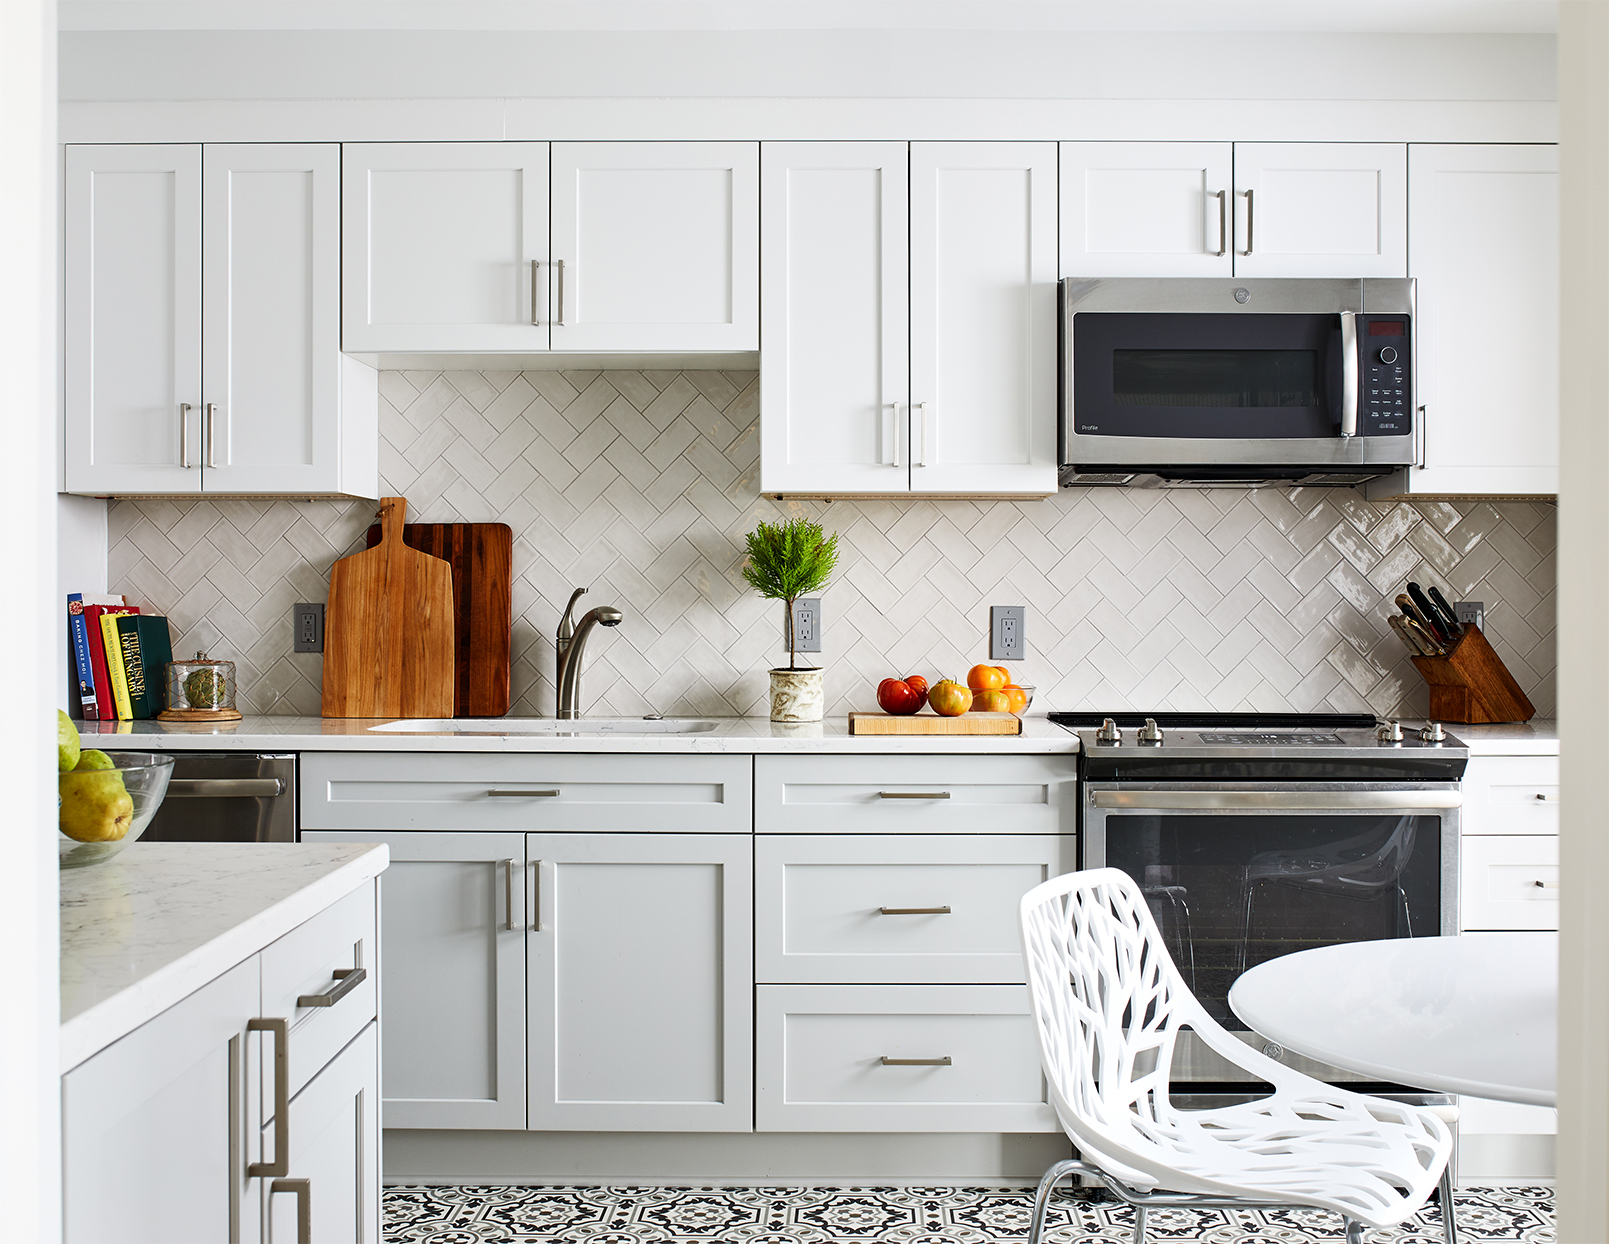 white herringbone backsplash